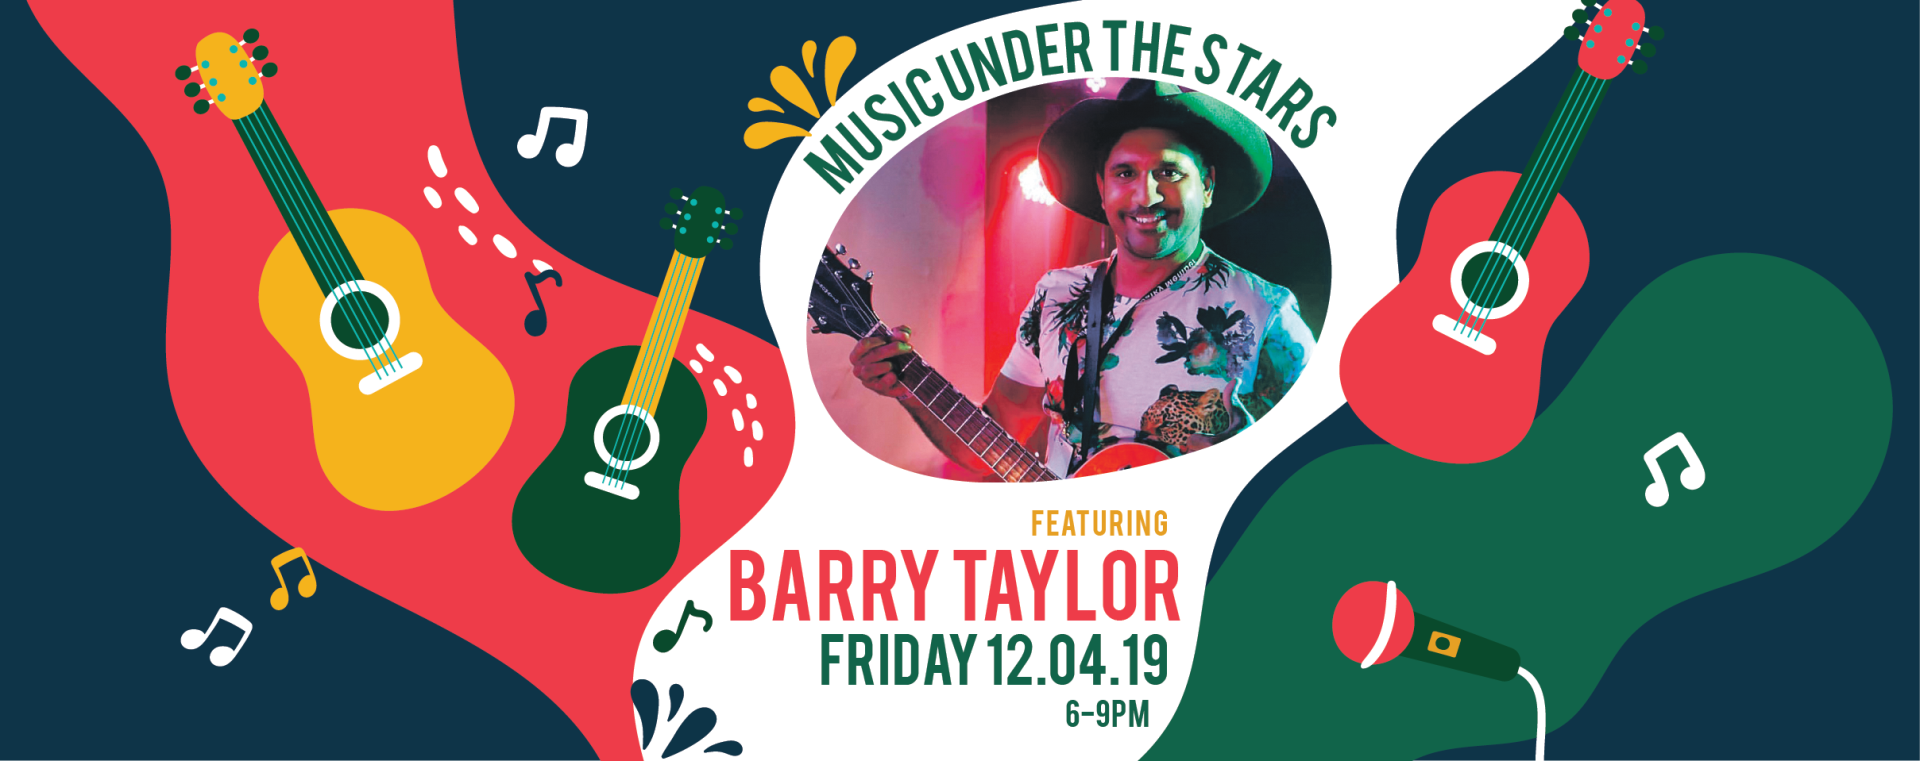 Music Under the Stars - Featuring Barry Taylor